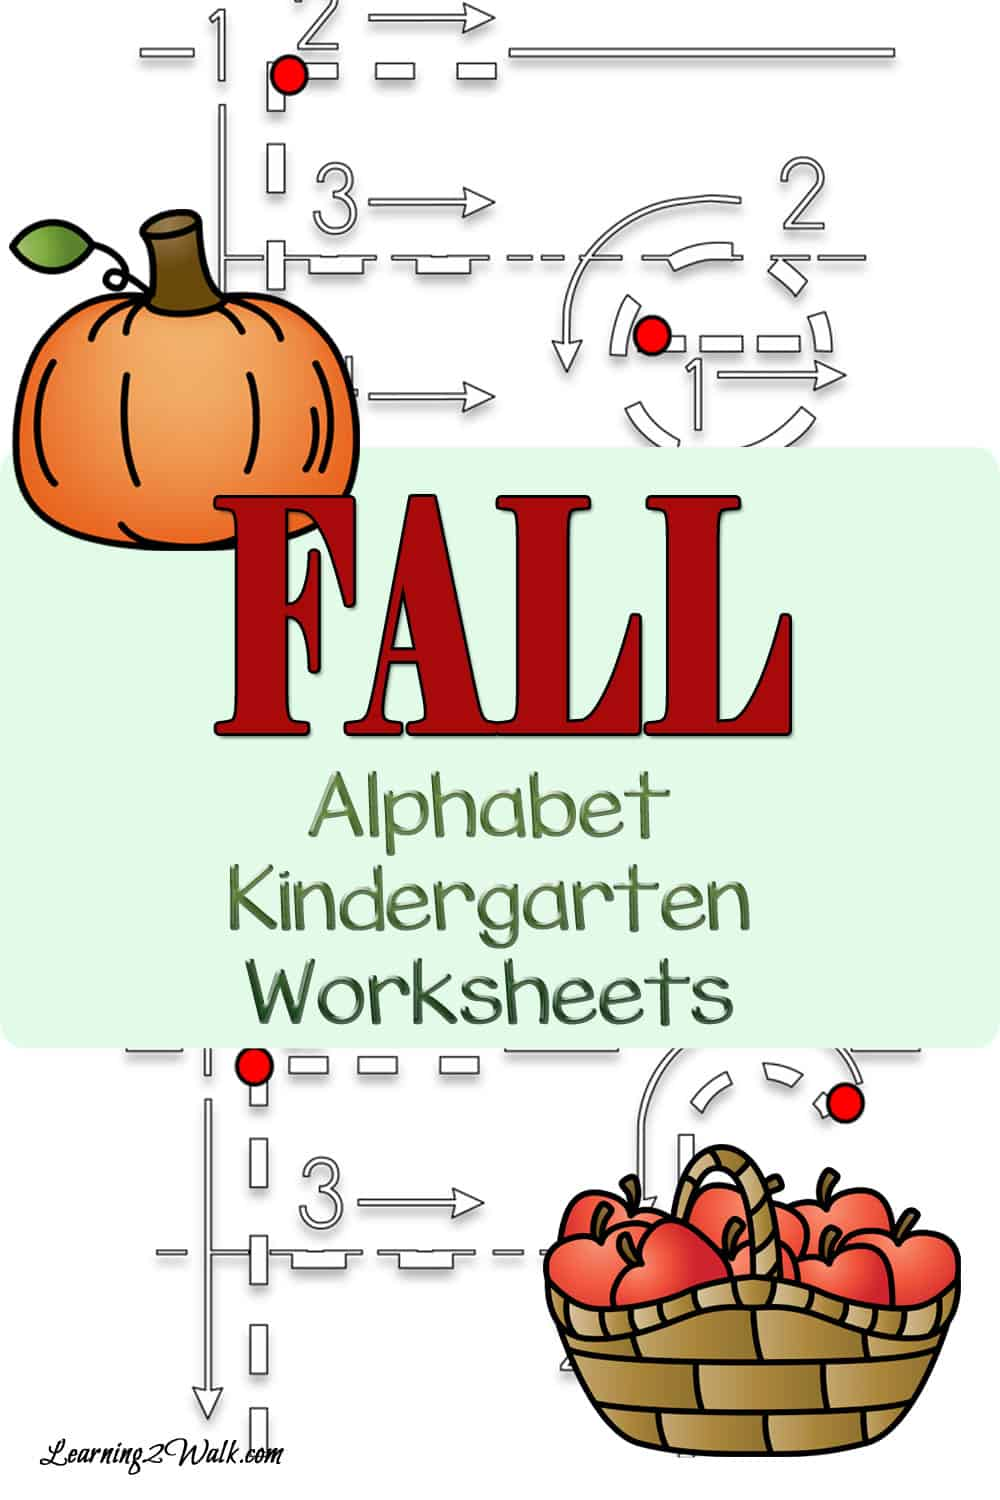 Fall Alphabet Kindergarten Worksheets